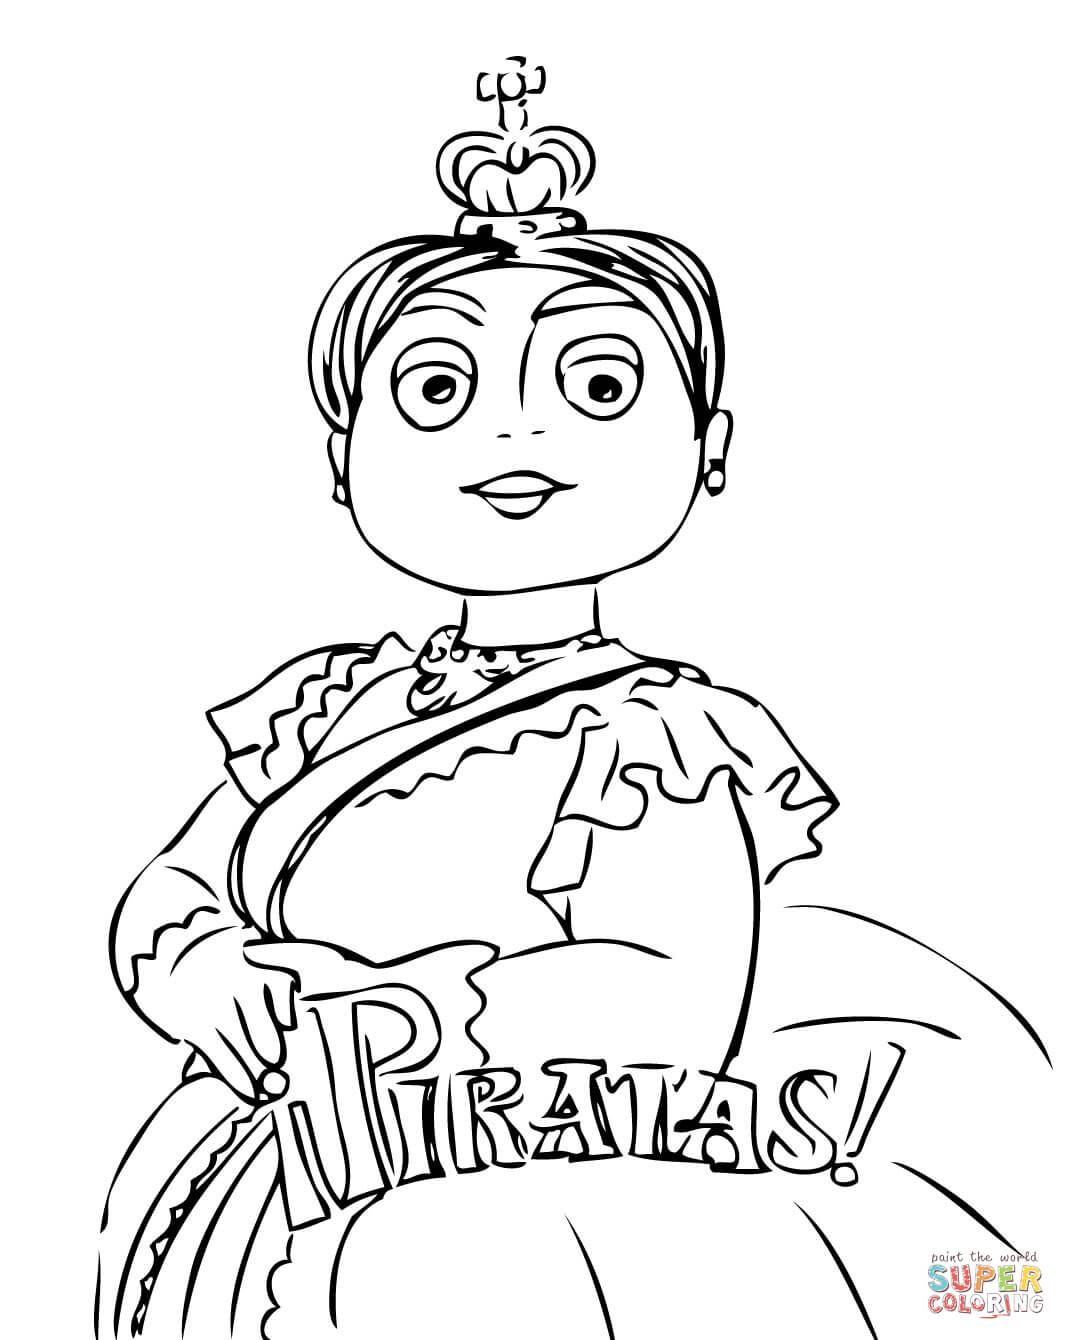 1066x1340 Queen Victoria Coloring Page Free Printable Coloring Pages